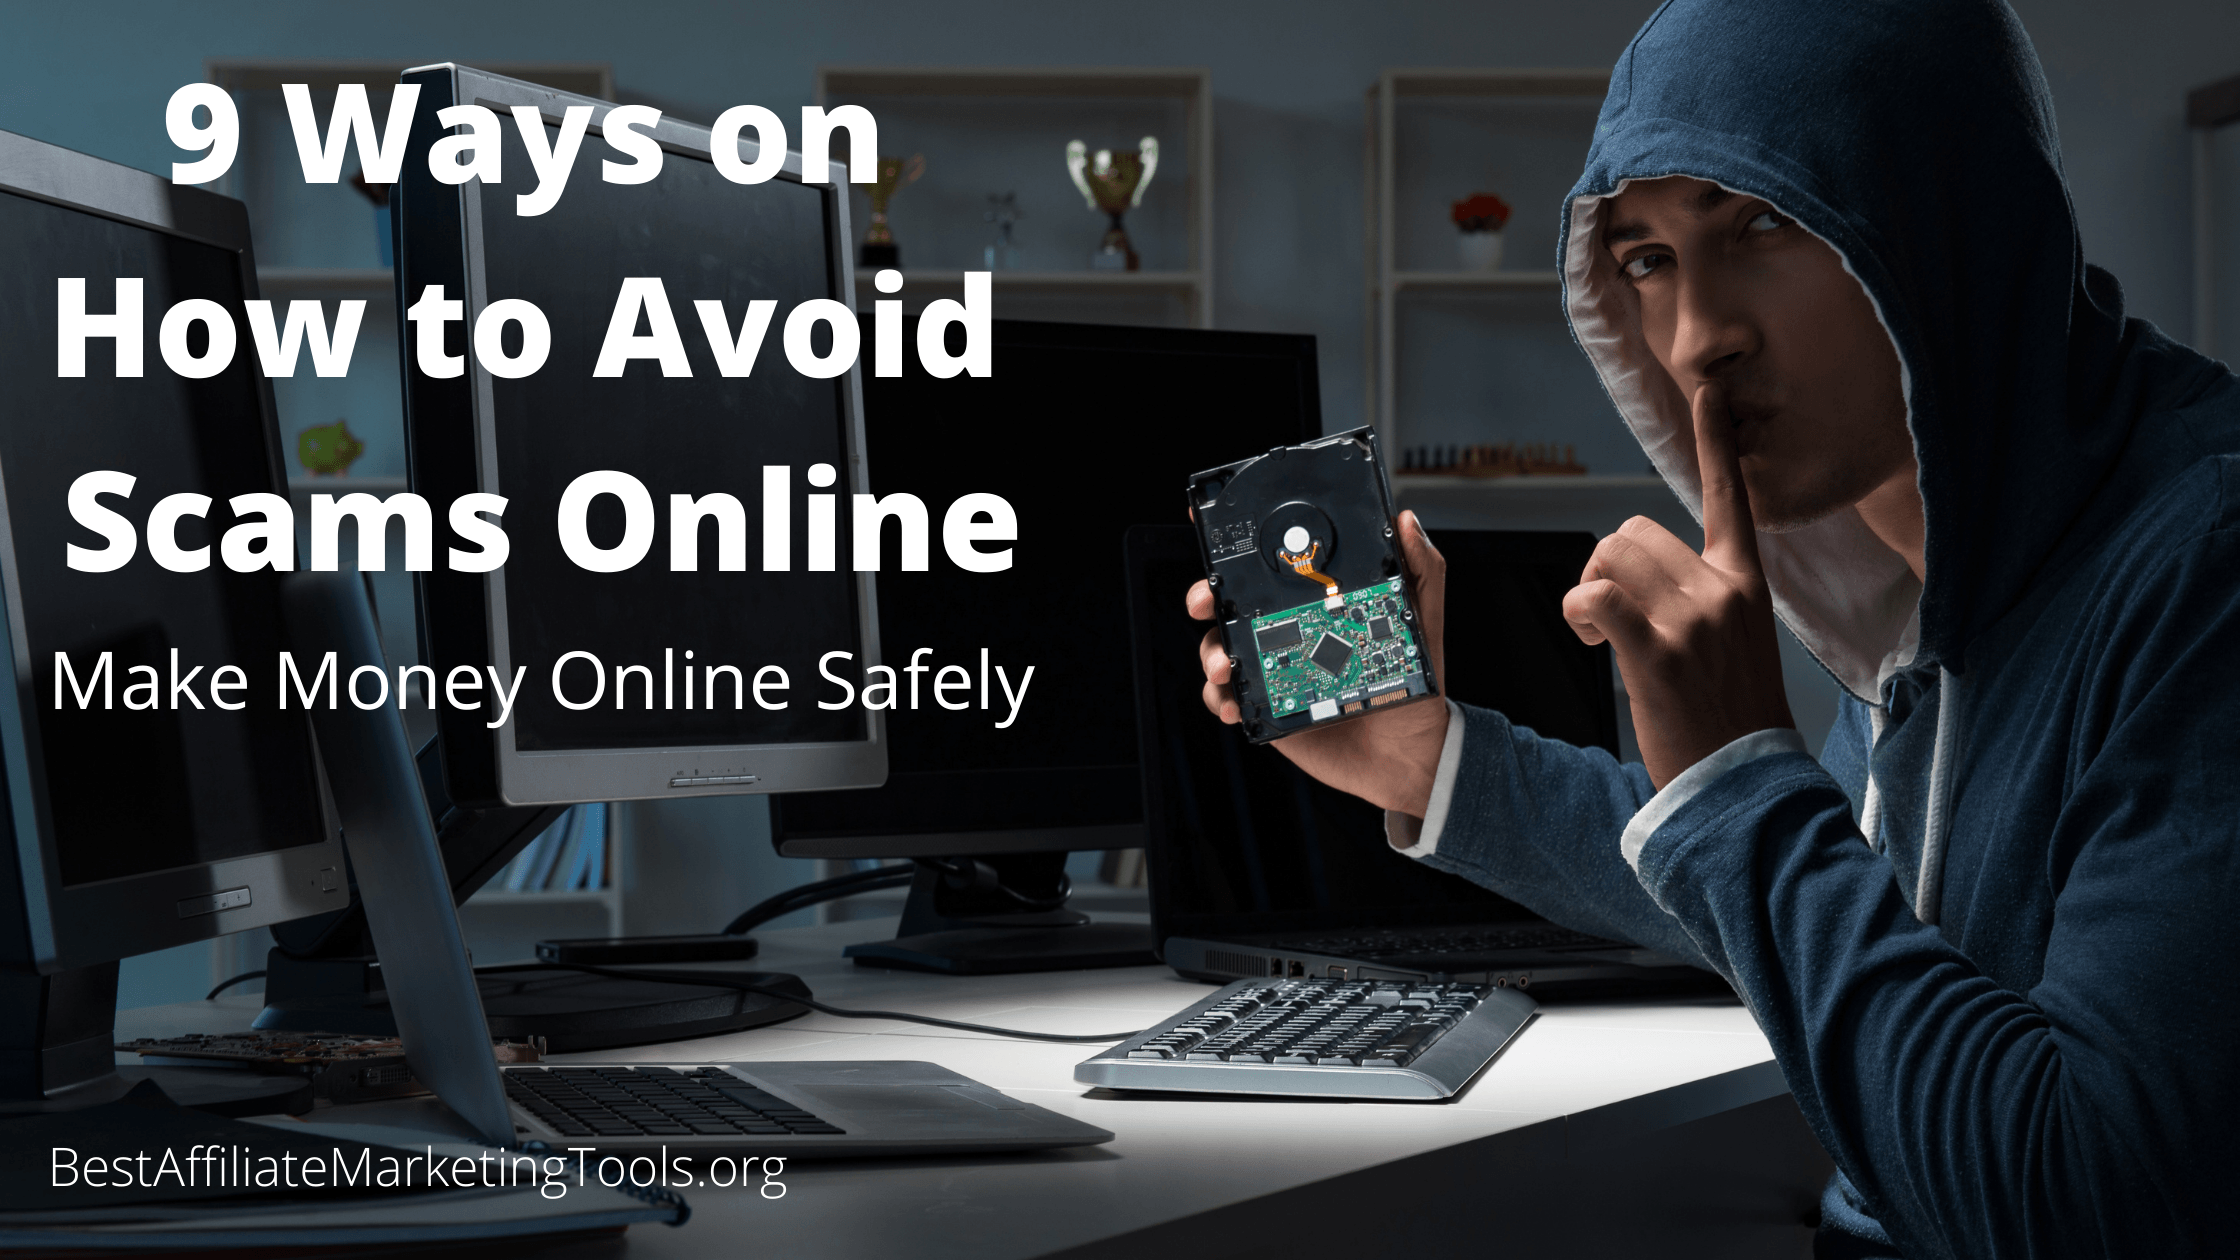 9 Ways on How to Avoid Scams Online